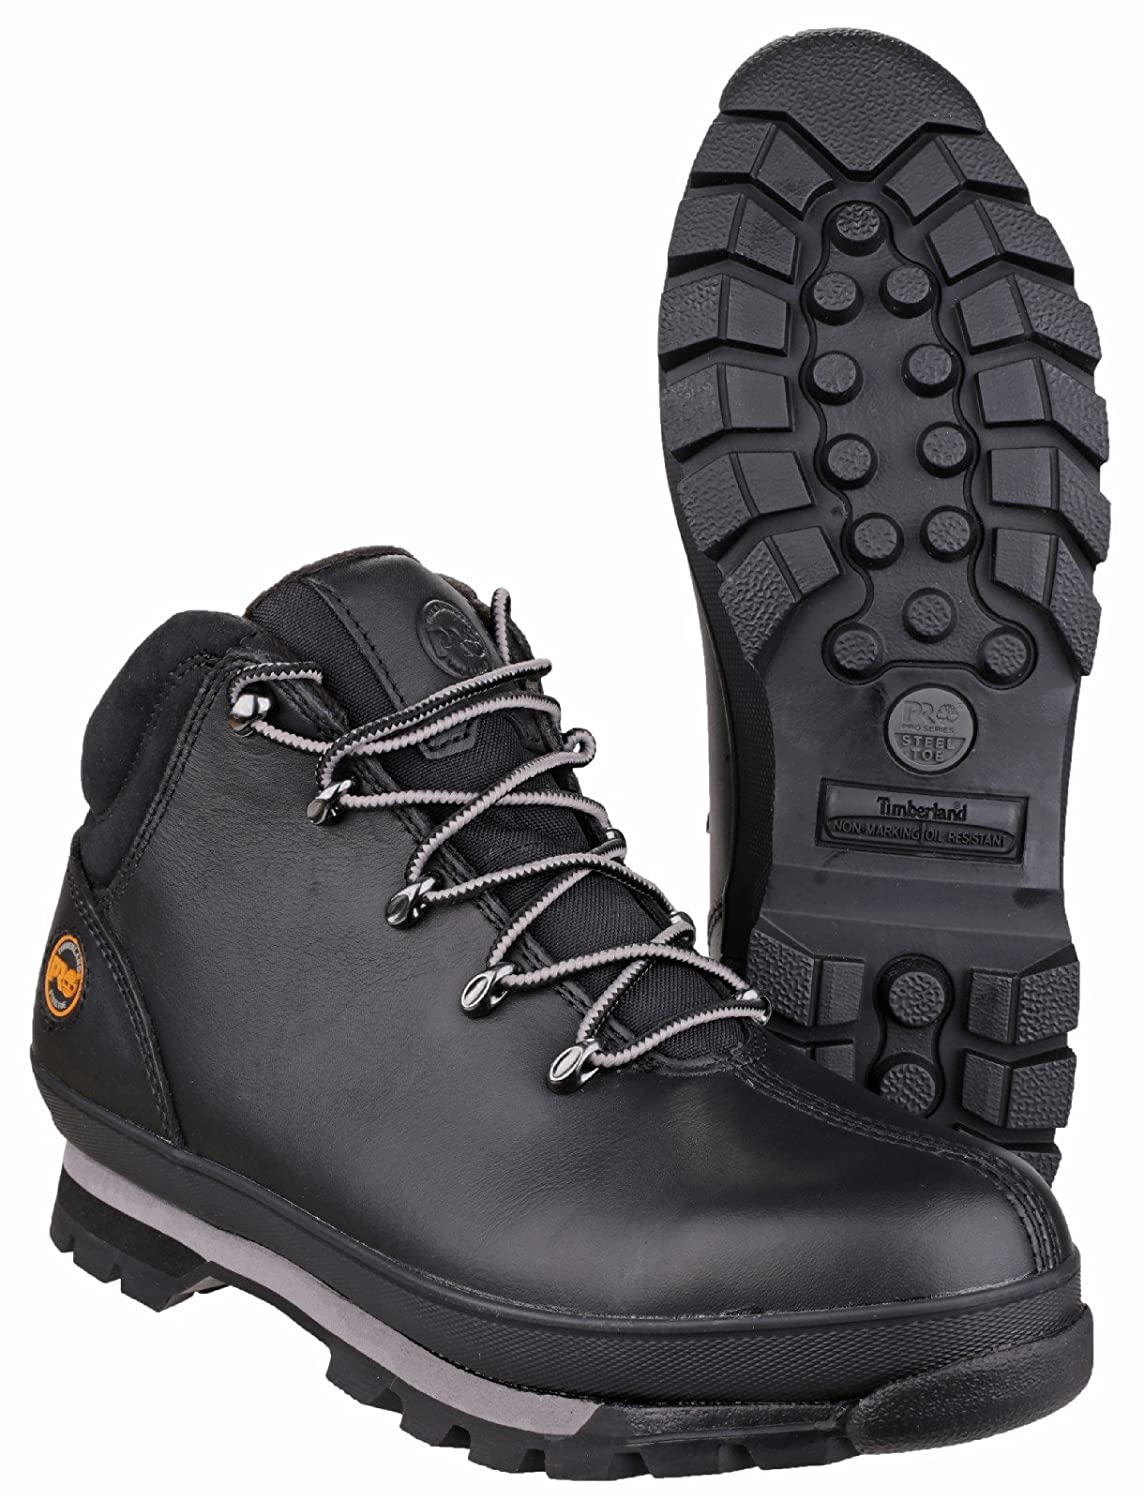 Mens Timberland Splitrock Pro Safety Boot Size 12  Amazon.co.uk  Shoes    Bags eb412c9d0cf0